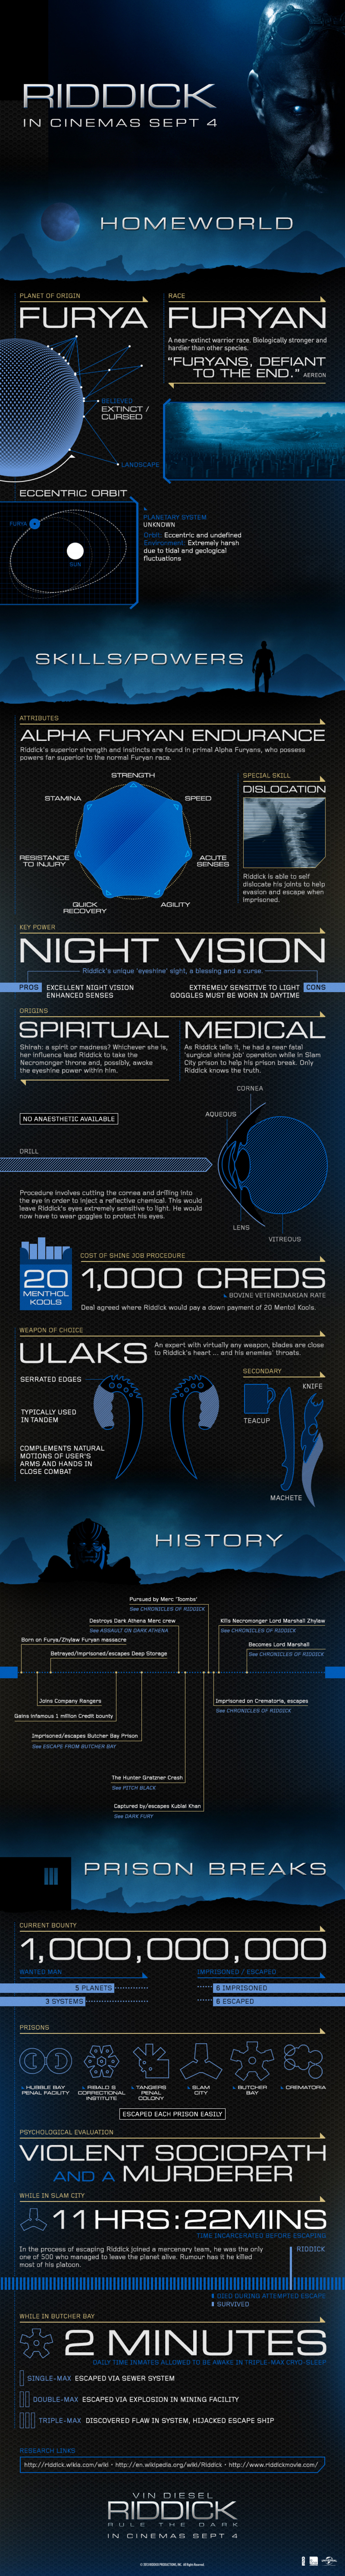 The History of Riddick Infographic